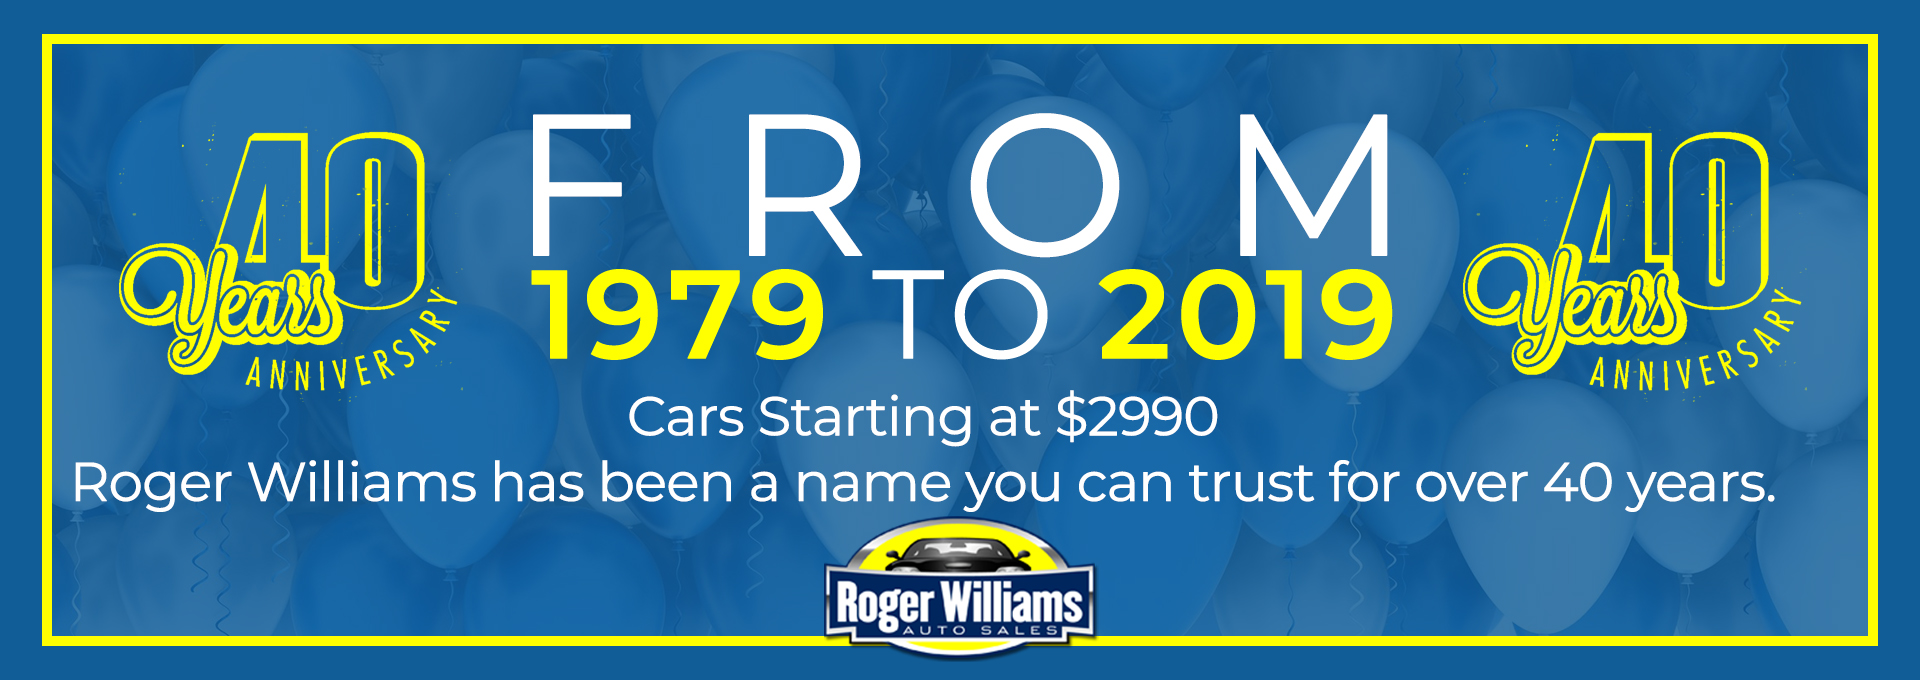 Happy 40th Anniversary to Roger Williams Auto Sales